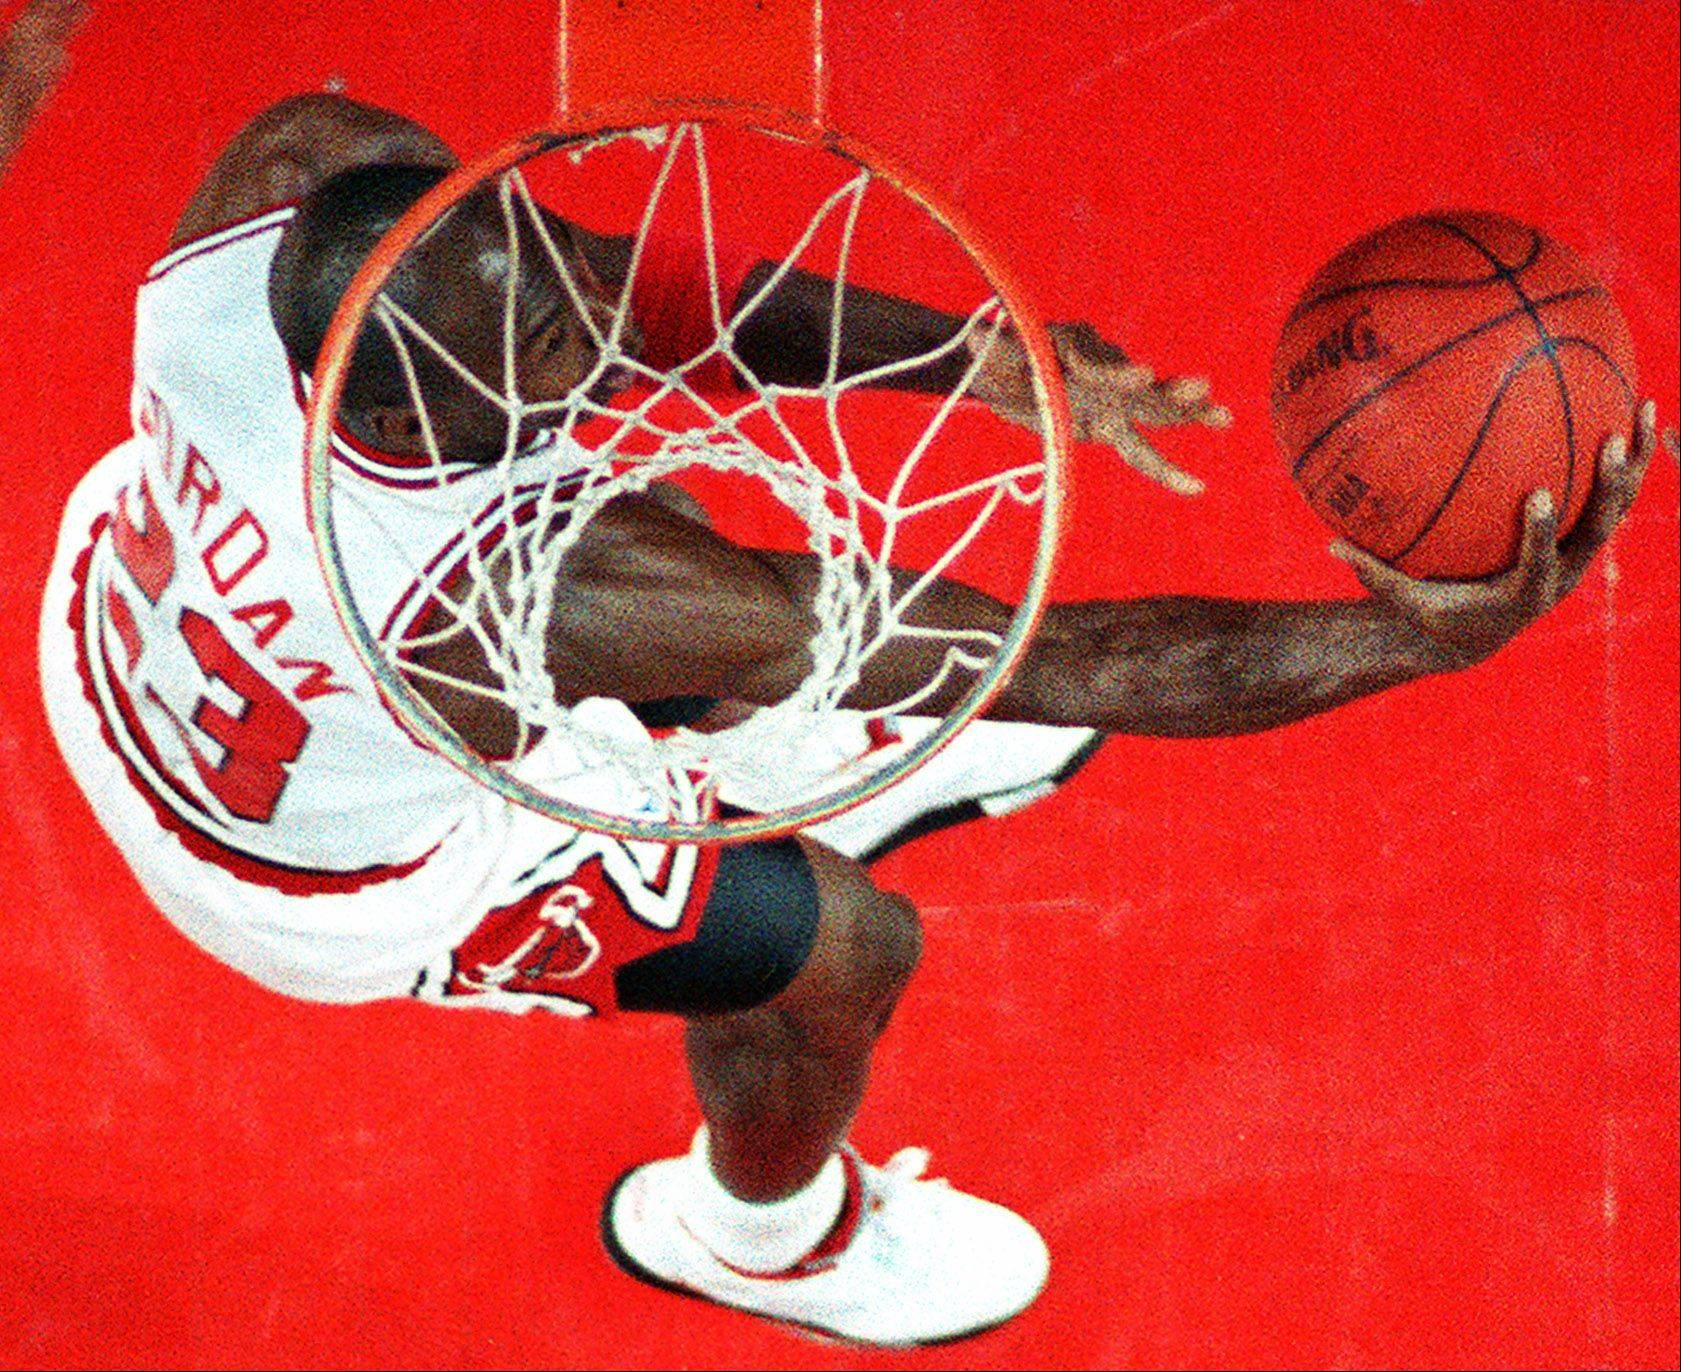 Michael Jordan under the basket prepares for a slam in the paint during a regular season game at the Chicago Stadium.